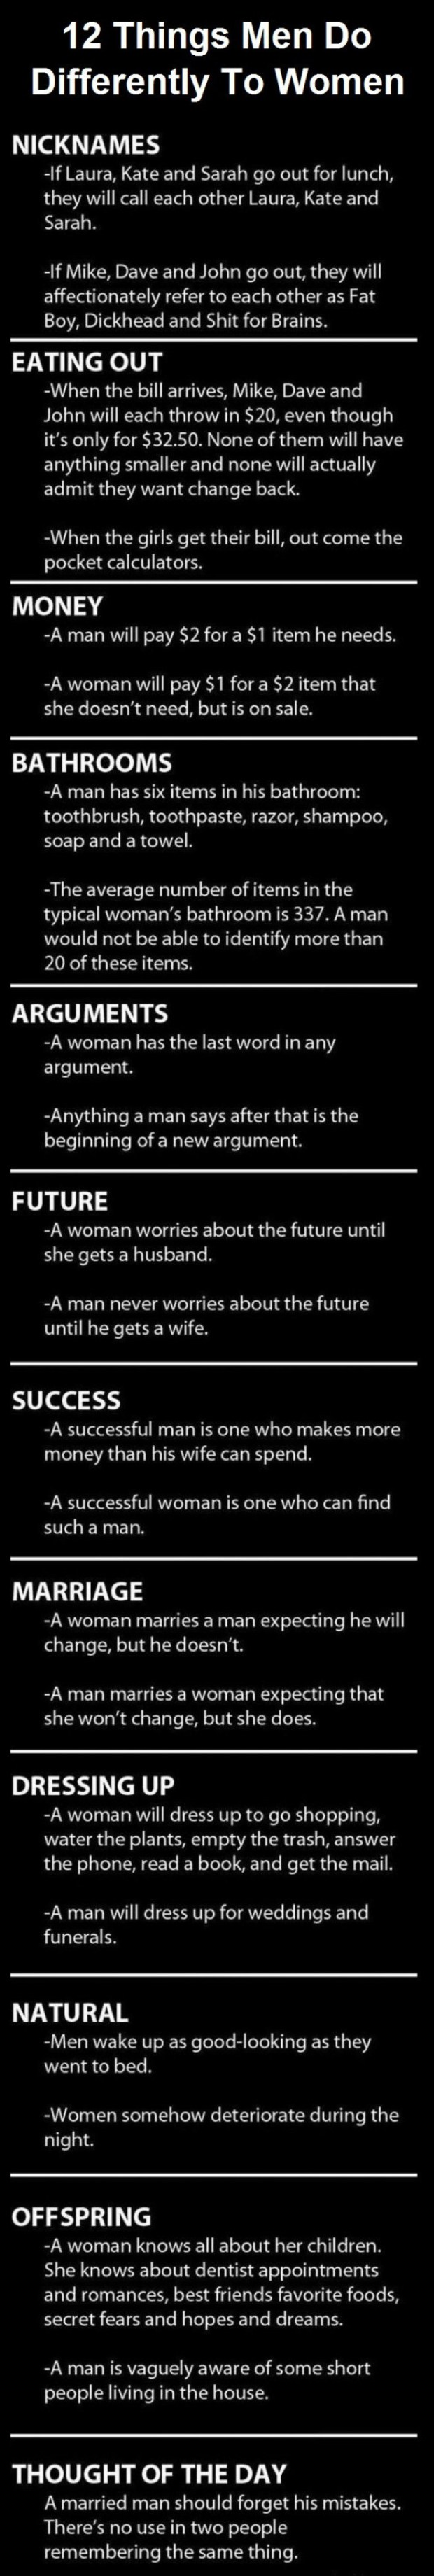 12 things men do differently than women